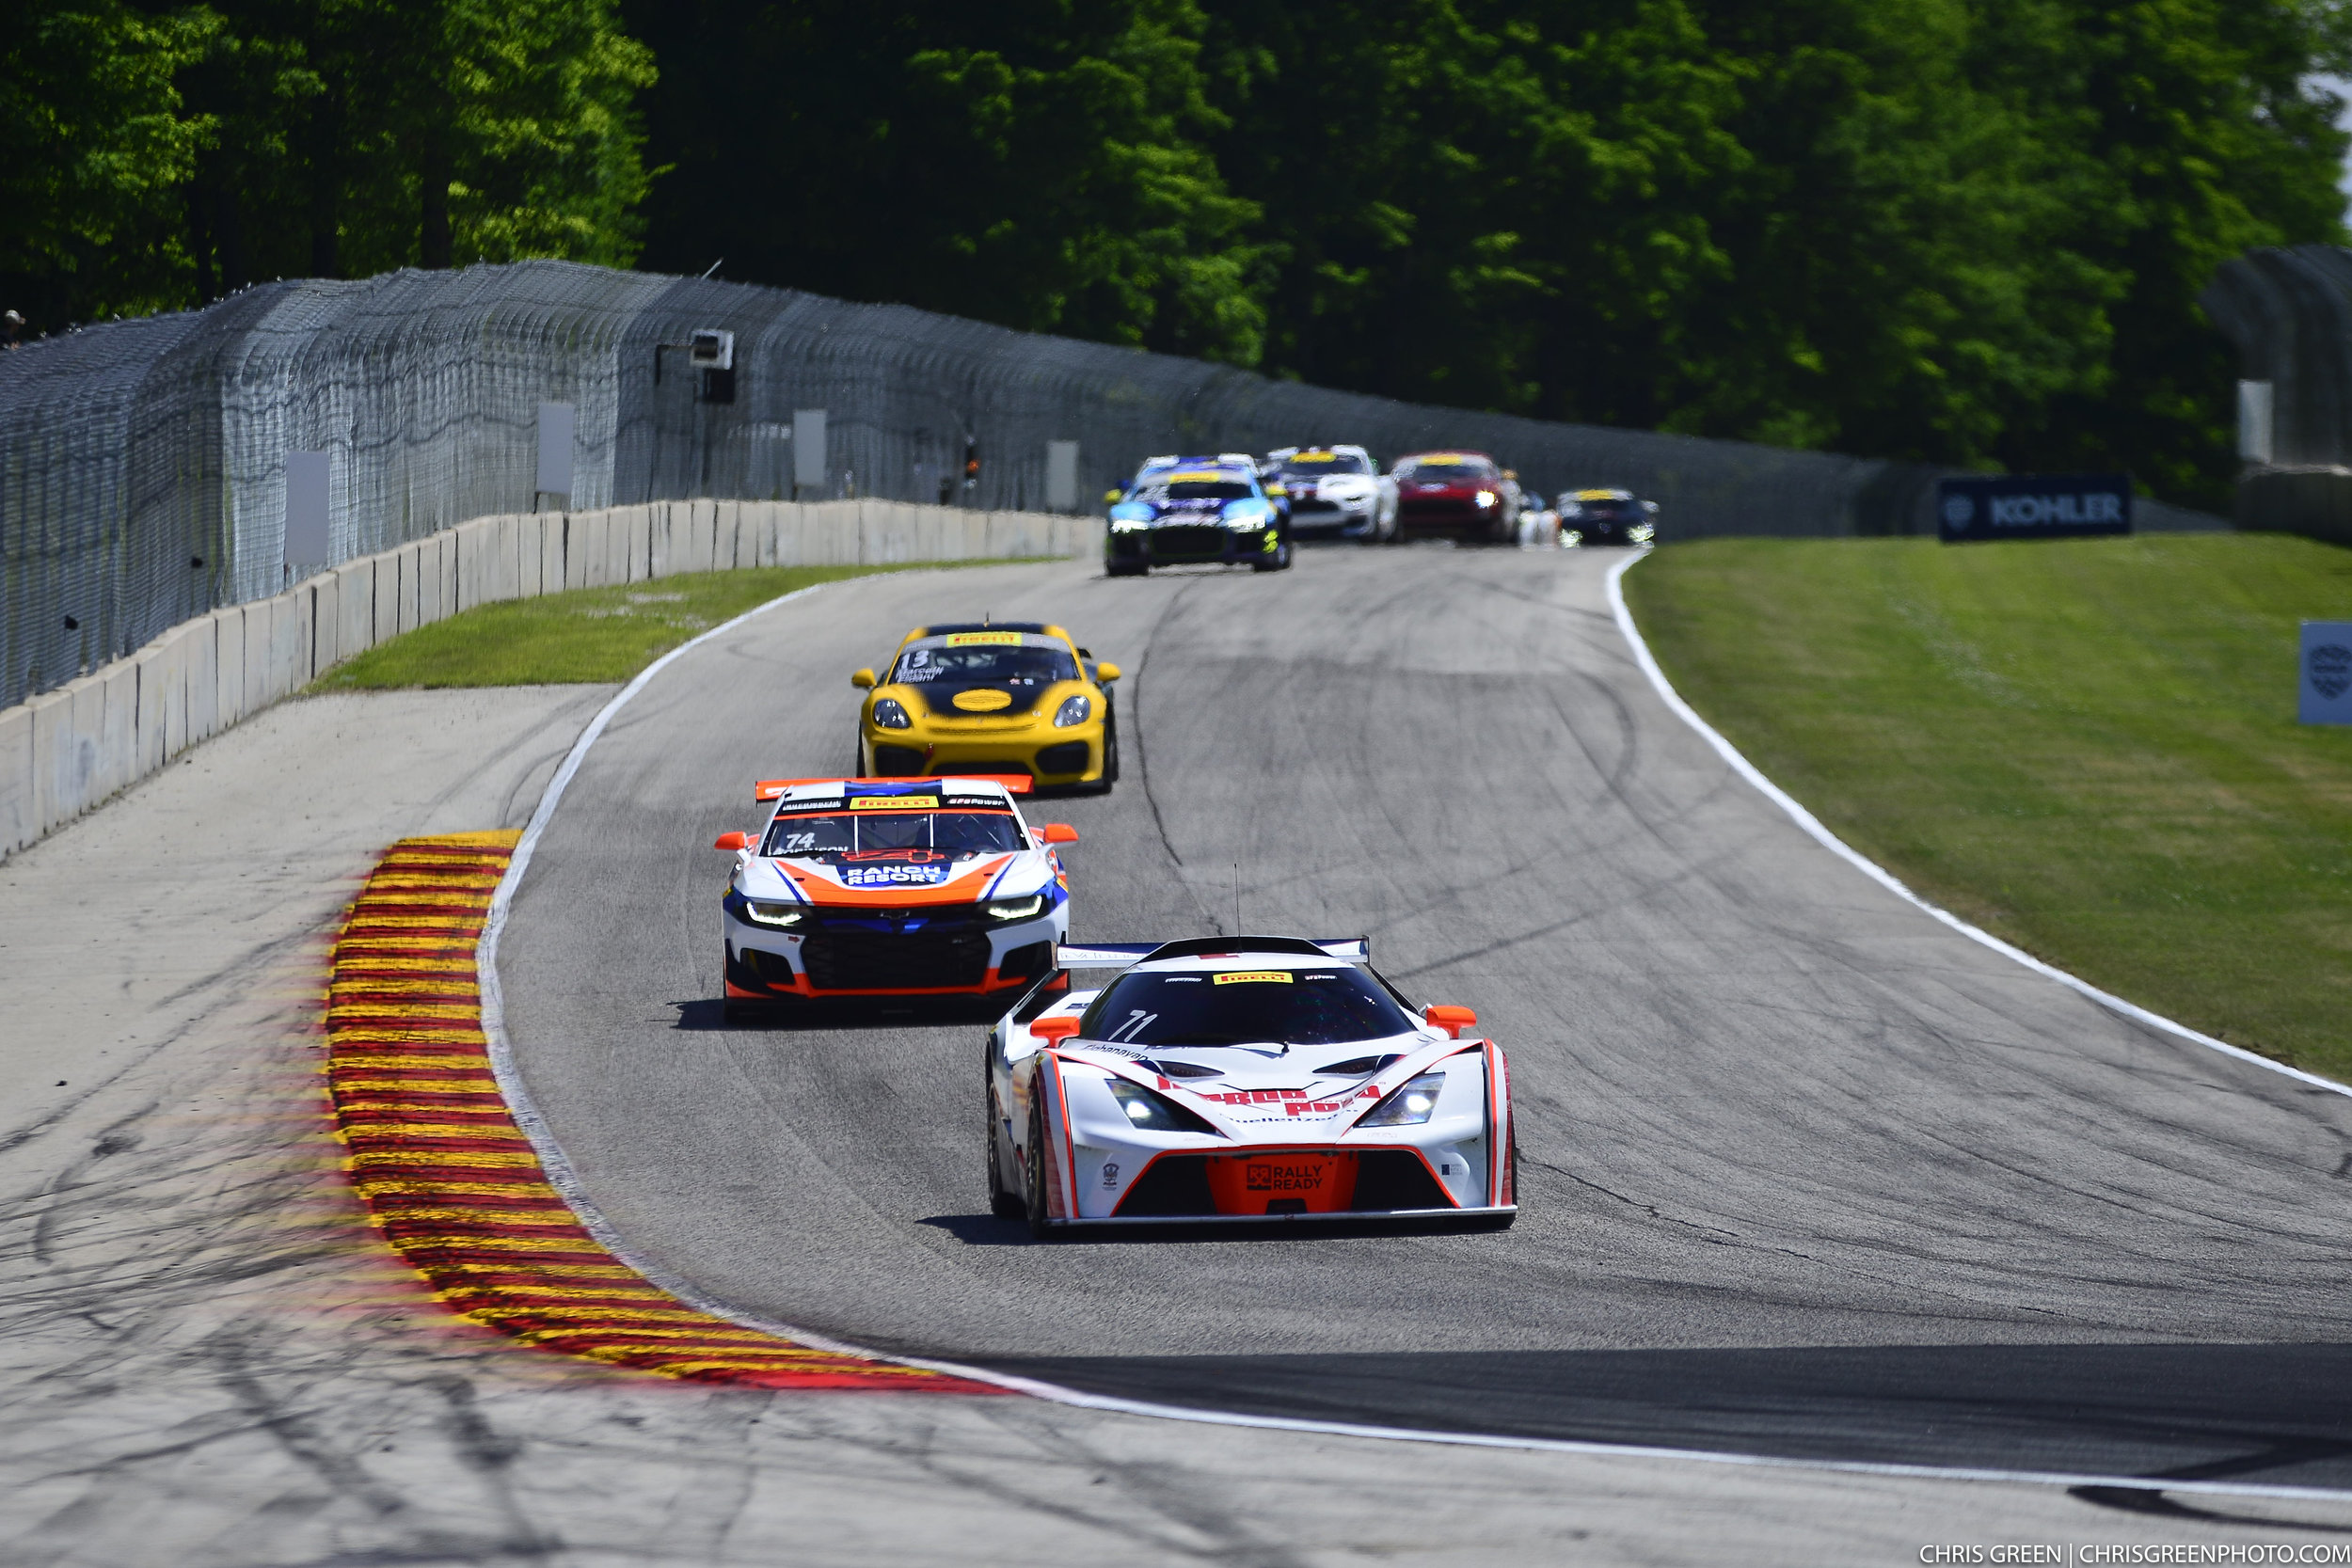 Grand Prix of Road America